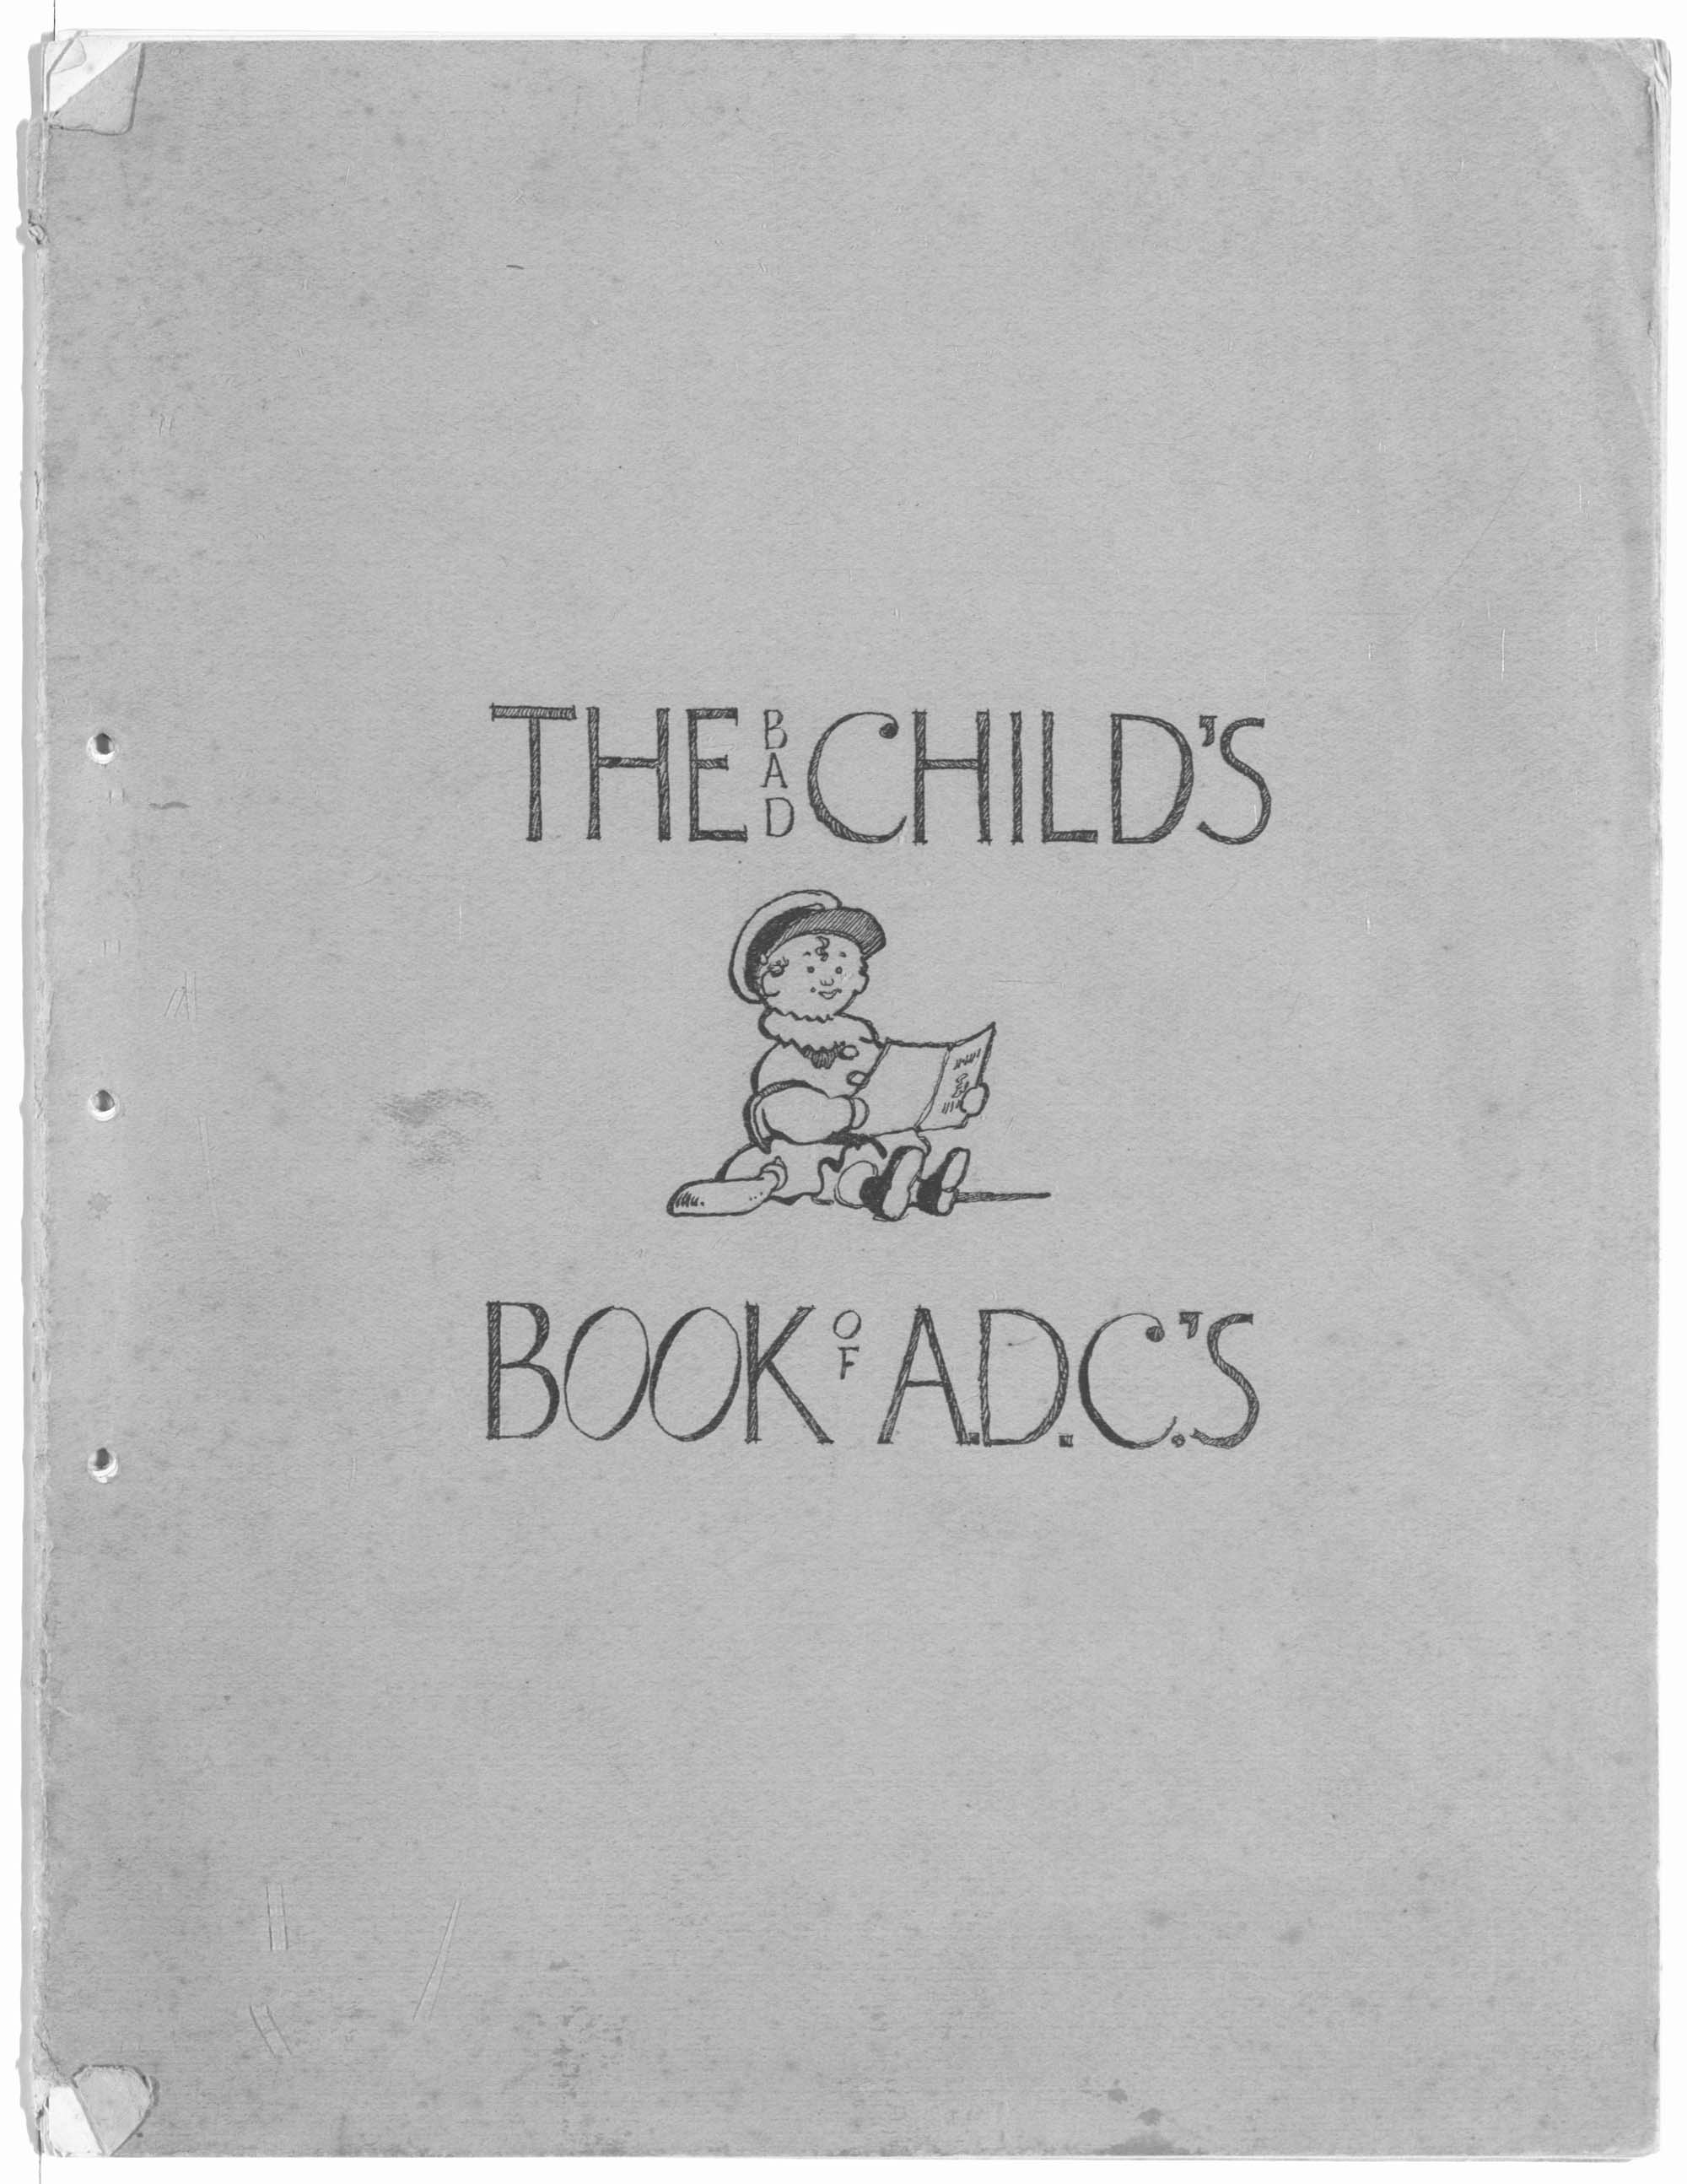 'The Bad Child's Book of A.D.C's' (Keyes Papers)